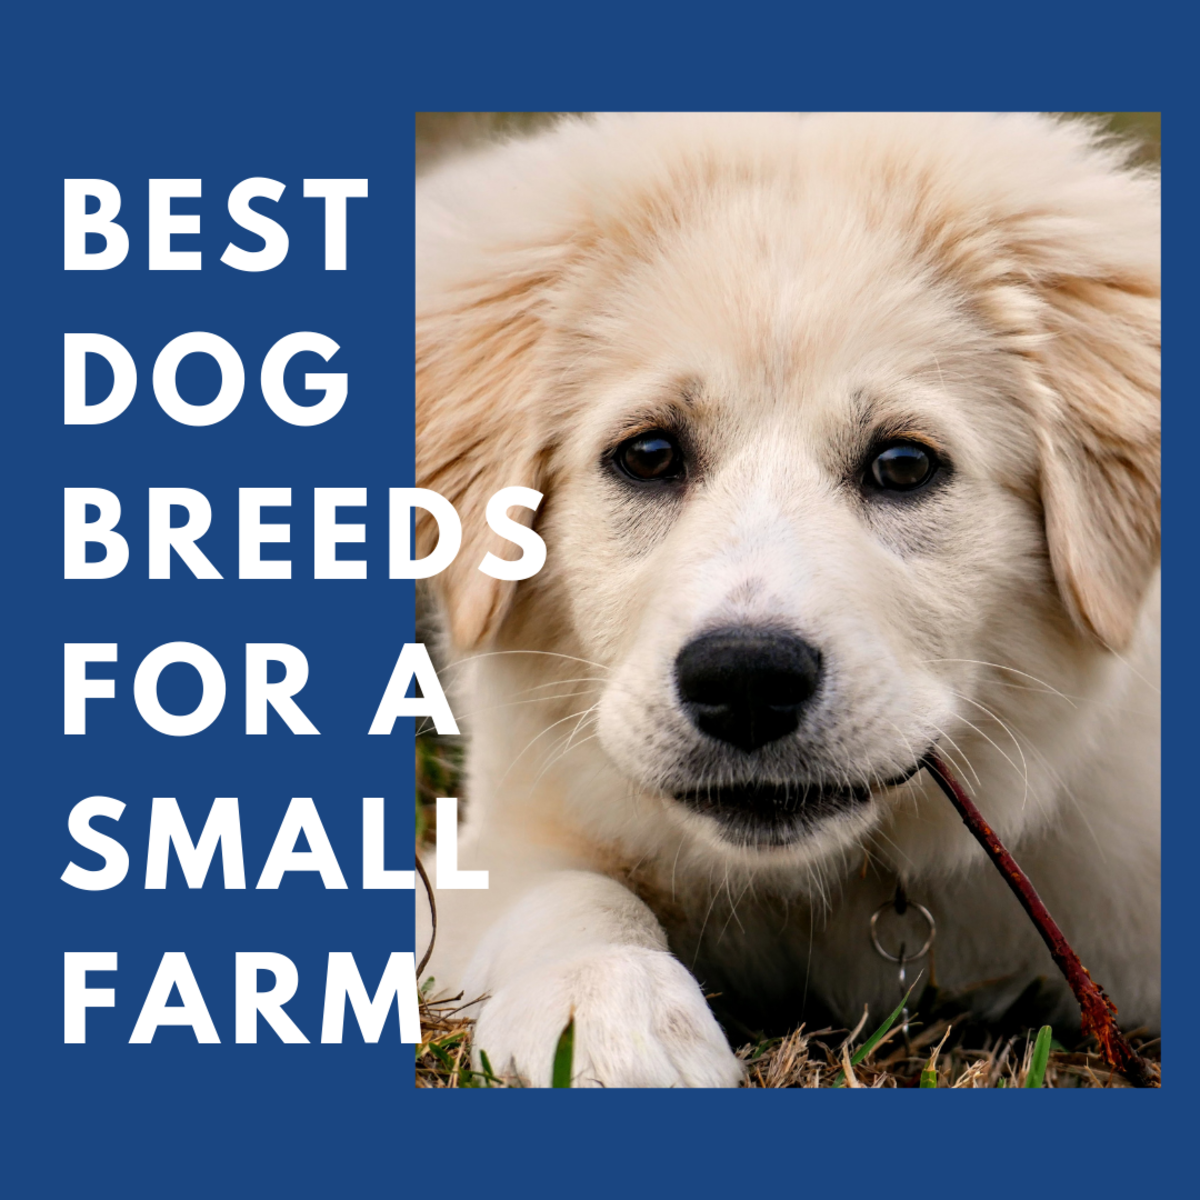 Several dog breeds are great on small farms.